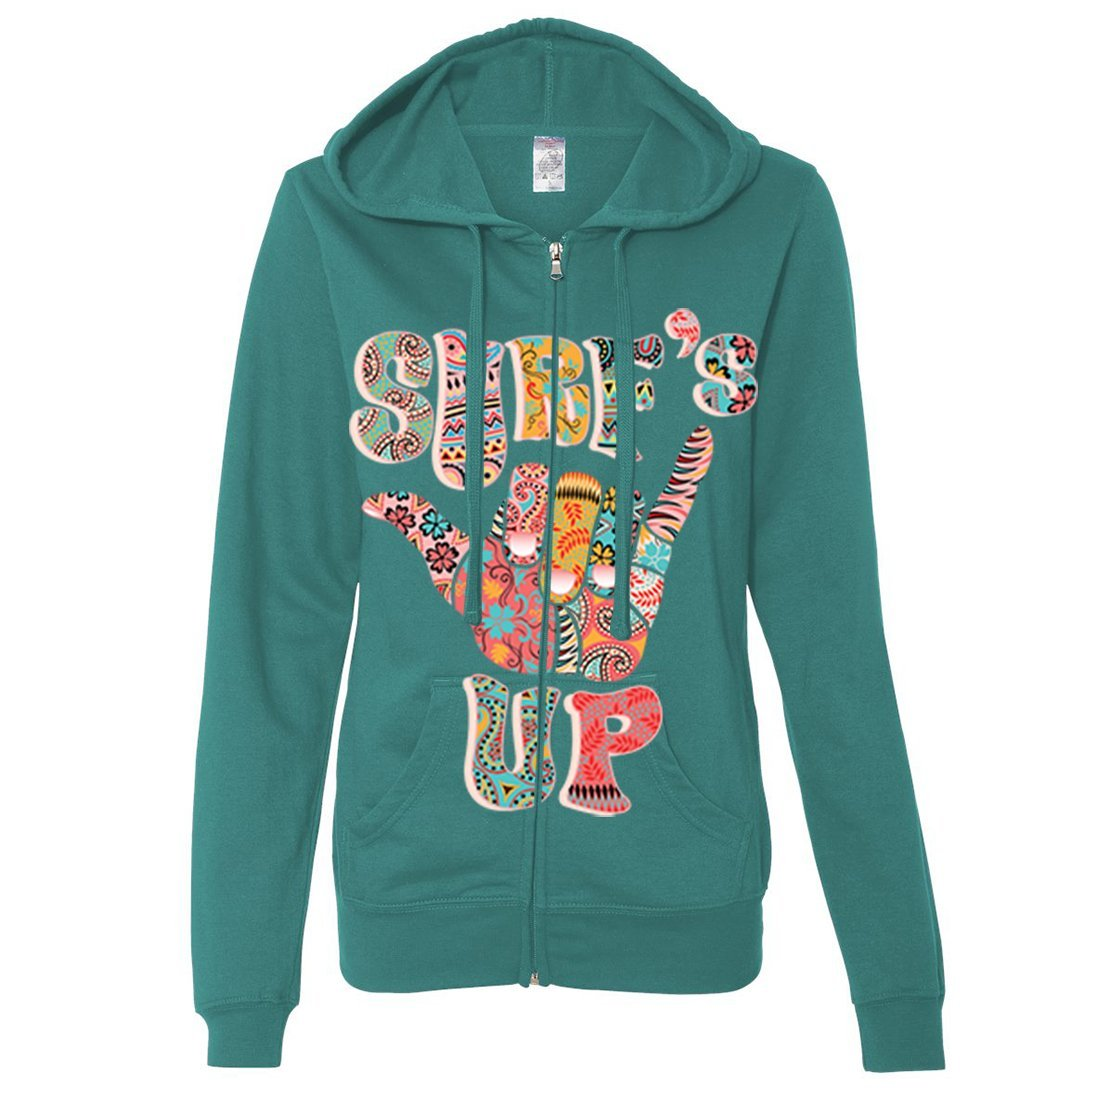 Dolphin Shirt Co Surfs Up Hang Loose Ladies Lightweight Fitted Zip-Up Hoodie